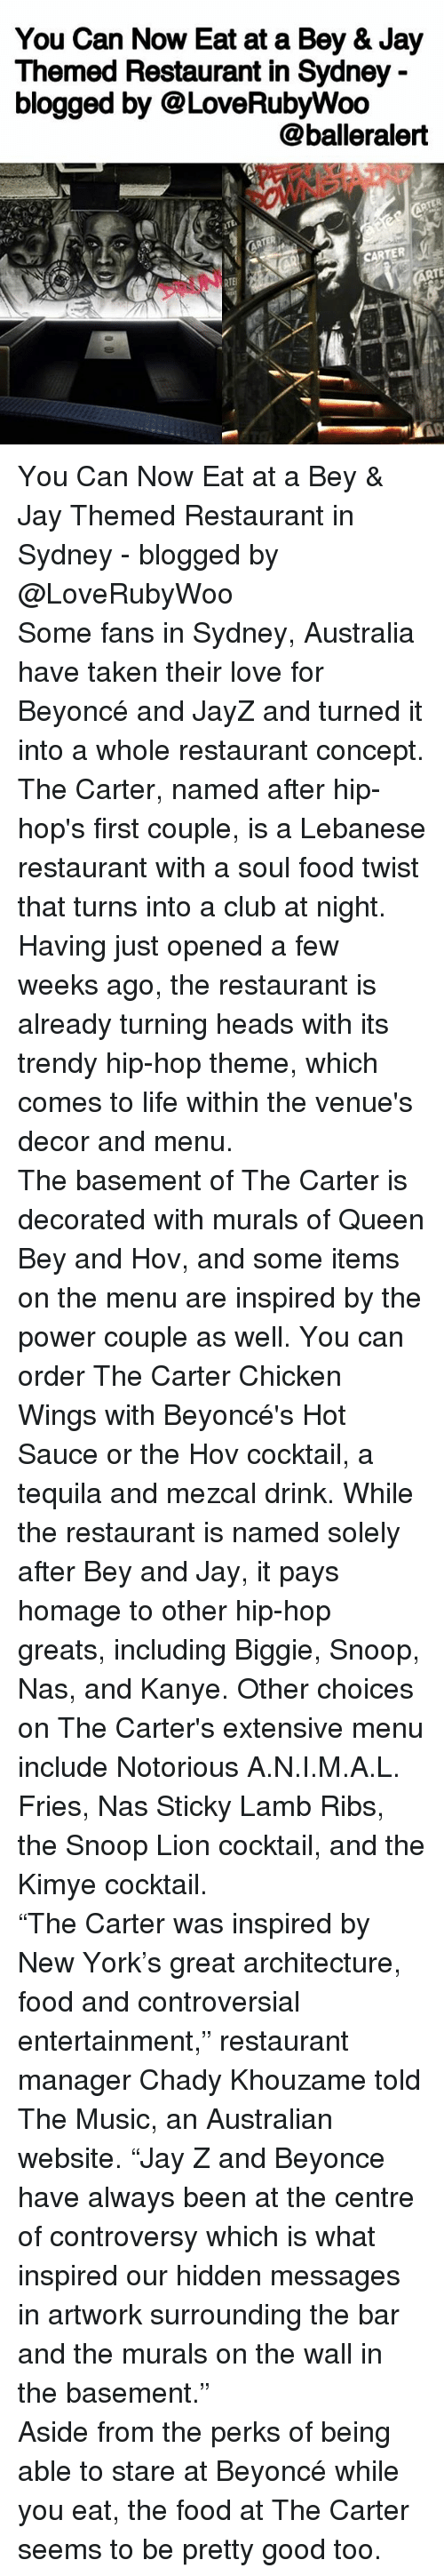 "Memes, 🤖, and Hidden: You Can Now Eat at a Bey & Jay  Themed Restaurant in Sydney  blogged by @LoveRubywoo  balleralert  CARTER You Can Now Eat at a Bey & Jay Themed Restaurant in Sydney - blogged by @LoveRubyWoo ⠀⠀⠀⠀⠀⠀⠀⠀⠀ ⠀⠀⠀⠀⠀⠀⠀⠀⠀ Some fans in Sydney, Australia have taken their love for Beyoncé and JayZ and turned it into a whole restaurant concept. The Carter, named after hip-hop's first couple, is a Lebanese restaurant with a soul food twist that turns into a club at night. Having just opened a few weeks ago, the restaurant is already turning heads with its trendy hip-hop theme, which comes to life within the venue's decor and menu. ⠀⠀⠀⠀⠀⠀⠀⠀⠀ ⠀⠀⠀⠀⠀⠀⠀⠀⠀ The basement of The Carter is decorated with murals of Queen Bey and Hov, and some items on the menu are inspired by the power couple as well. You can order The Carter Chicken Wings with Beyoncé's Hot Sauce or the Hov cocktail, a tequila and mezcal drink. While the restaurant is named solely after Bey and Jay, it pays homage to other hip-hop greats, including Biggie, Snoop, Nas, and Kanye. Other choices on The Carter's extensive menu include Notorious A.N.I.M.A.L. Fries, Nas Sticky Lamb Ribs, the Snoop Lion cocktail, and the Kimye cocktail. ⠀⠀⠀⠀⠀⠀⠀⠀⠀ ⠀⠀⠀⠀⠀⠀⠀⠀⠀ ""The Carter was inspired by New York's great architecture, food and controversial entertainment,"" restaurant manager Chady Khouzame told The Music, an Australian website. ""Jay Z and Beyonce have always been at the centre of controversy which is what inspired our hidden messages in artwork surrounding the bar and the murals on the wall in the basement."" ⠀⠀⠀⠀⠀⠀⠀⠀⠀ ⠀⠀⠀⠀⠀⠀⠀⠀⠀ Aside from the perks of being able to stare at Beyoncé while you eat, the food at The Carter seems to be pretty good too."